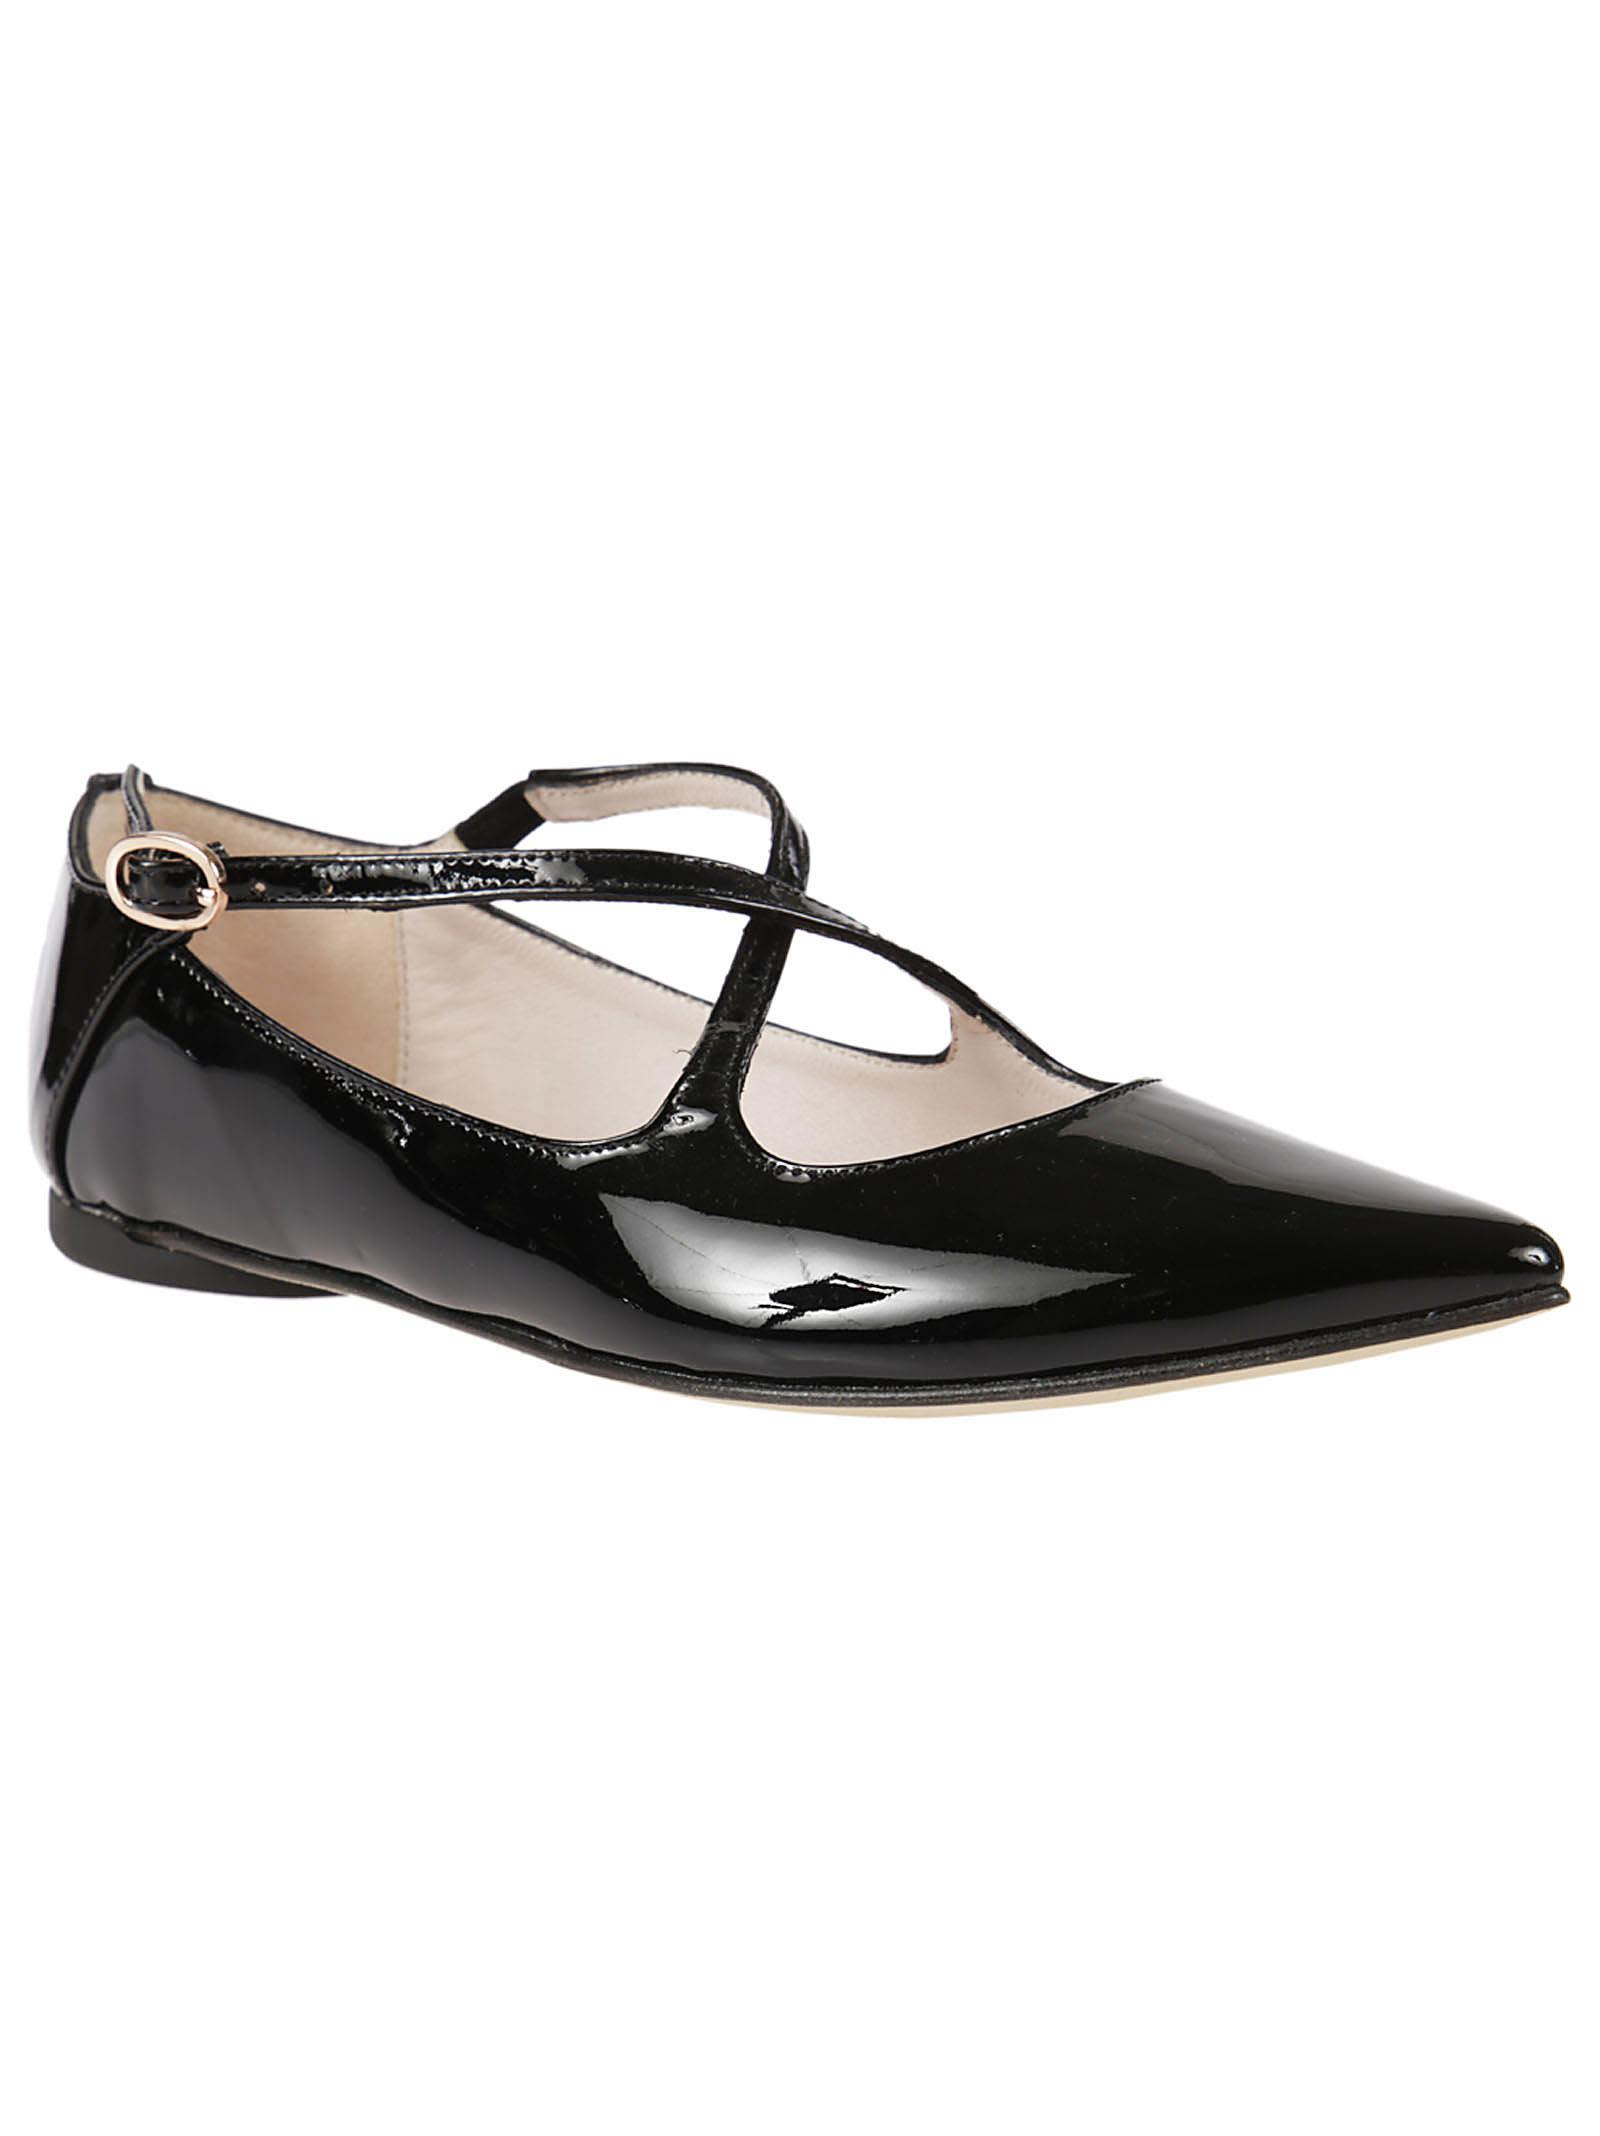 Buy Cheap 2018 Repetto Frida Ballerinas Sale Reliable Cheap Browse Sale Pre Order Discount Manchester isy9ql